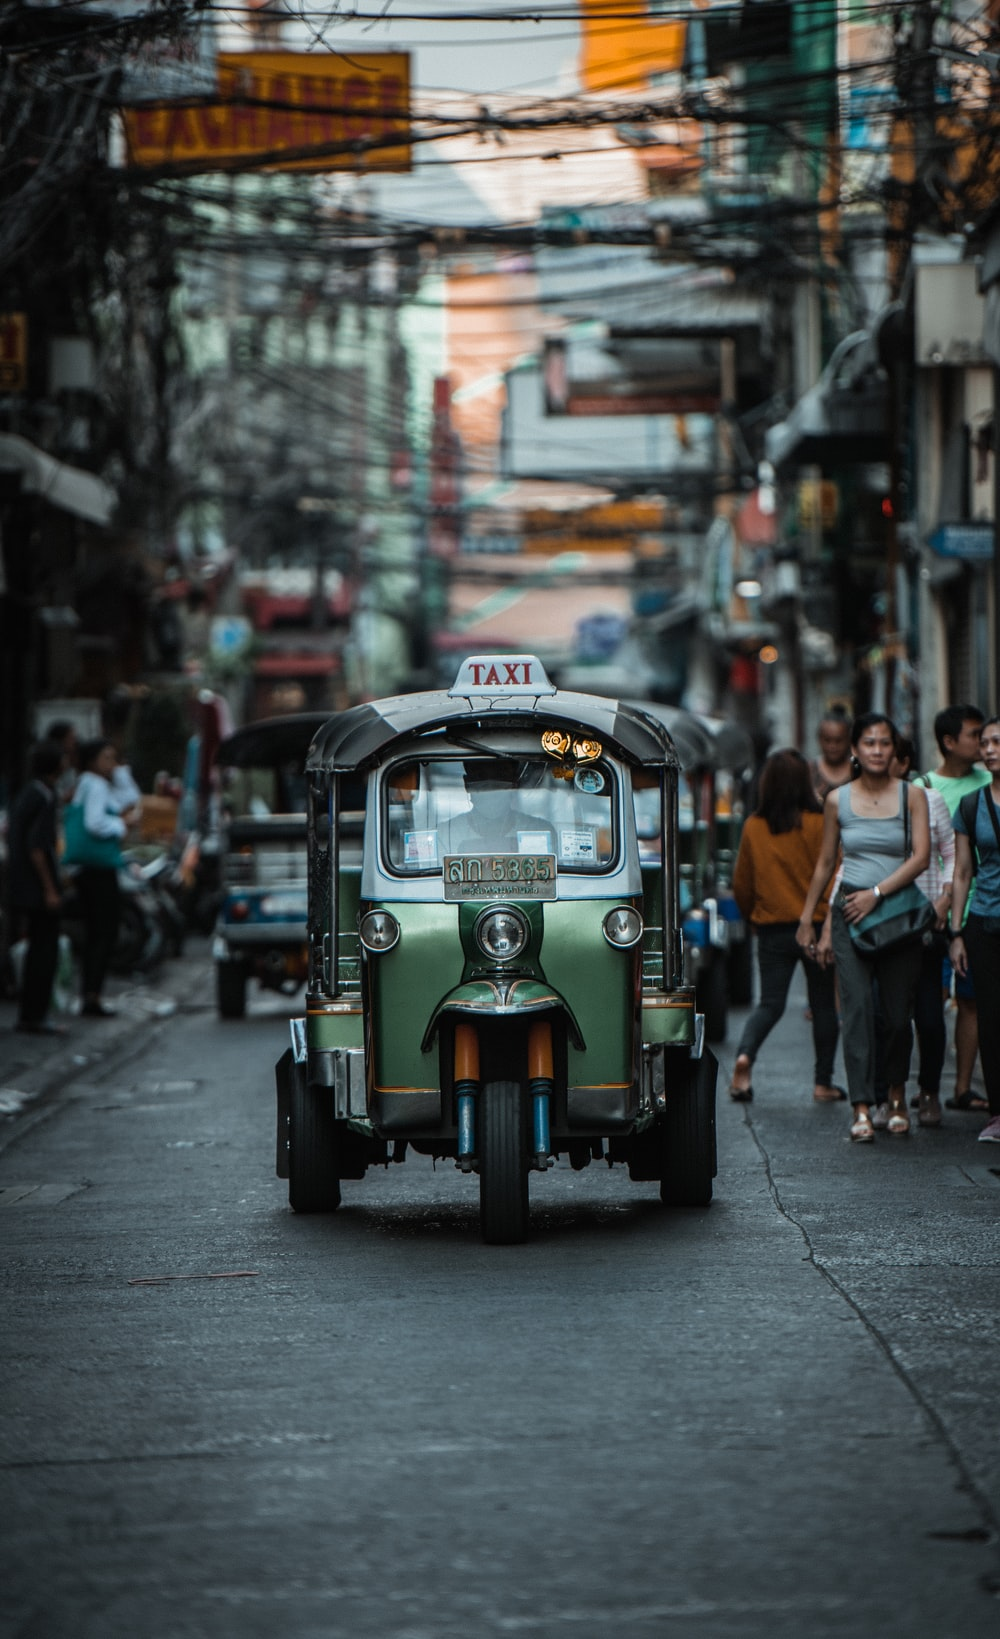 green auto rickshaw on road in between buildings with people walking around during daytime